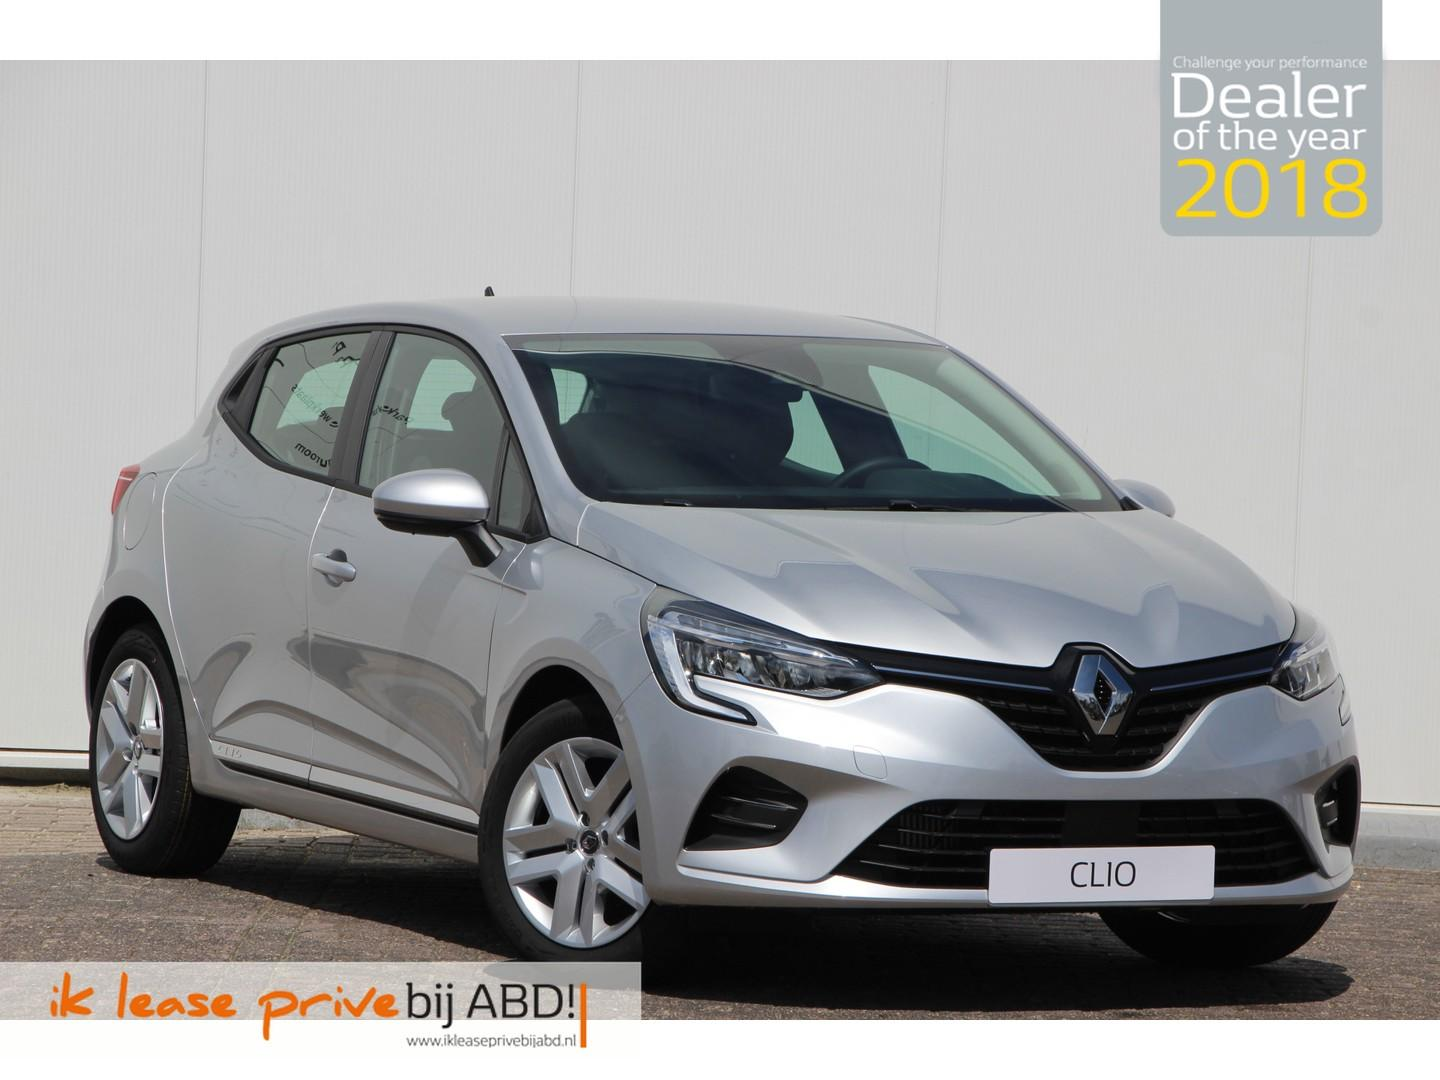 Renault Clio 1.0 tce zen private lease